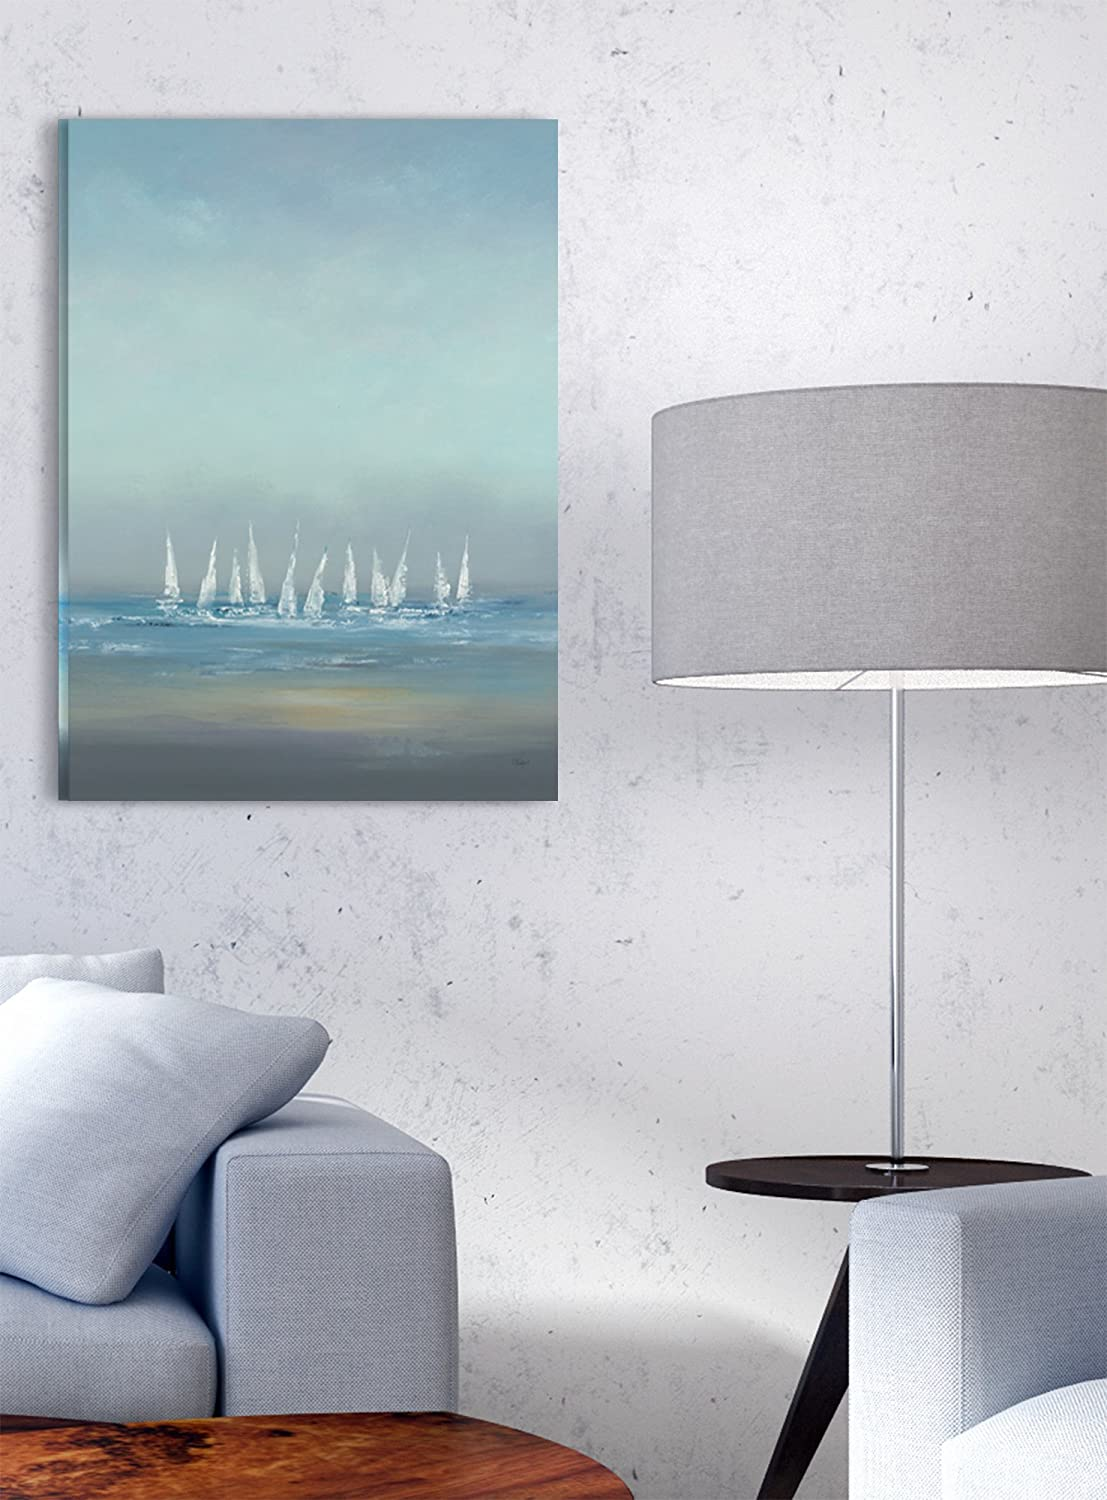 Multi-Color 11 x 14 The Stupell Home D/écor Collection The The Regatta Abstract Seascape Framed Giclee Texturized Art